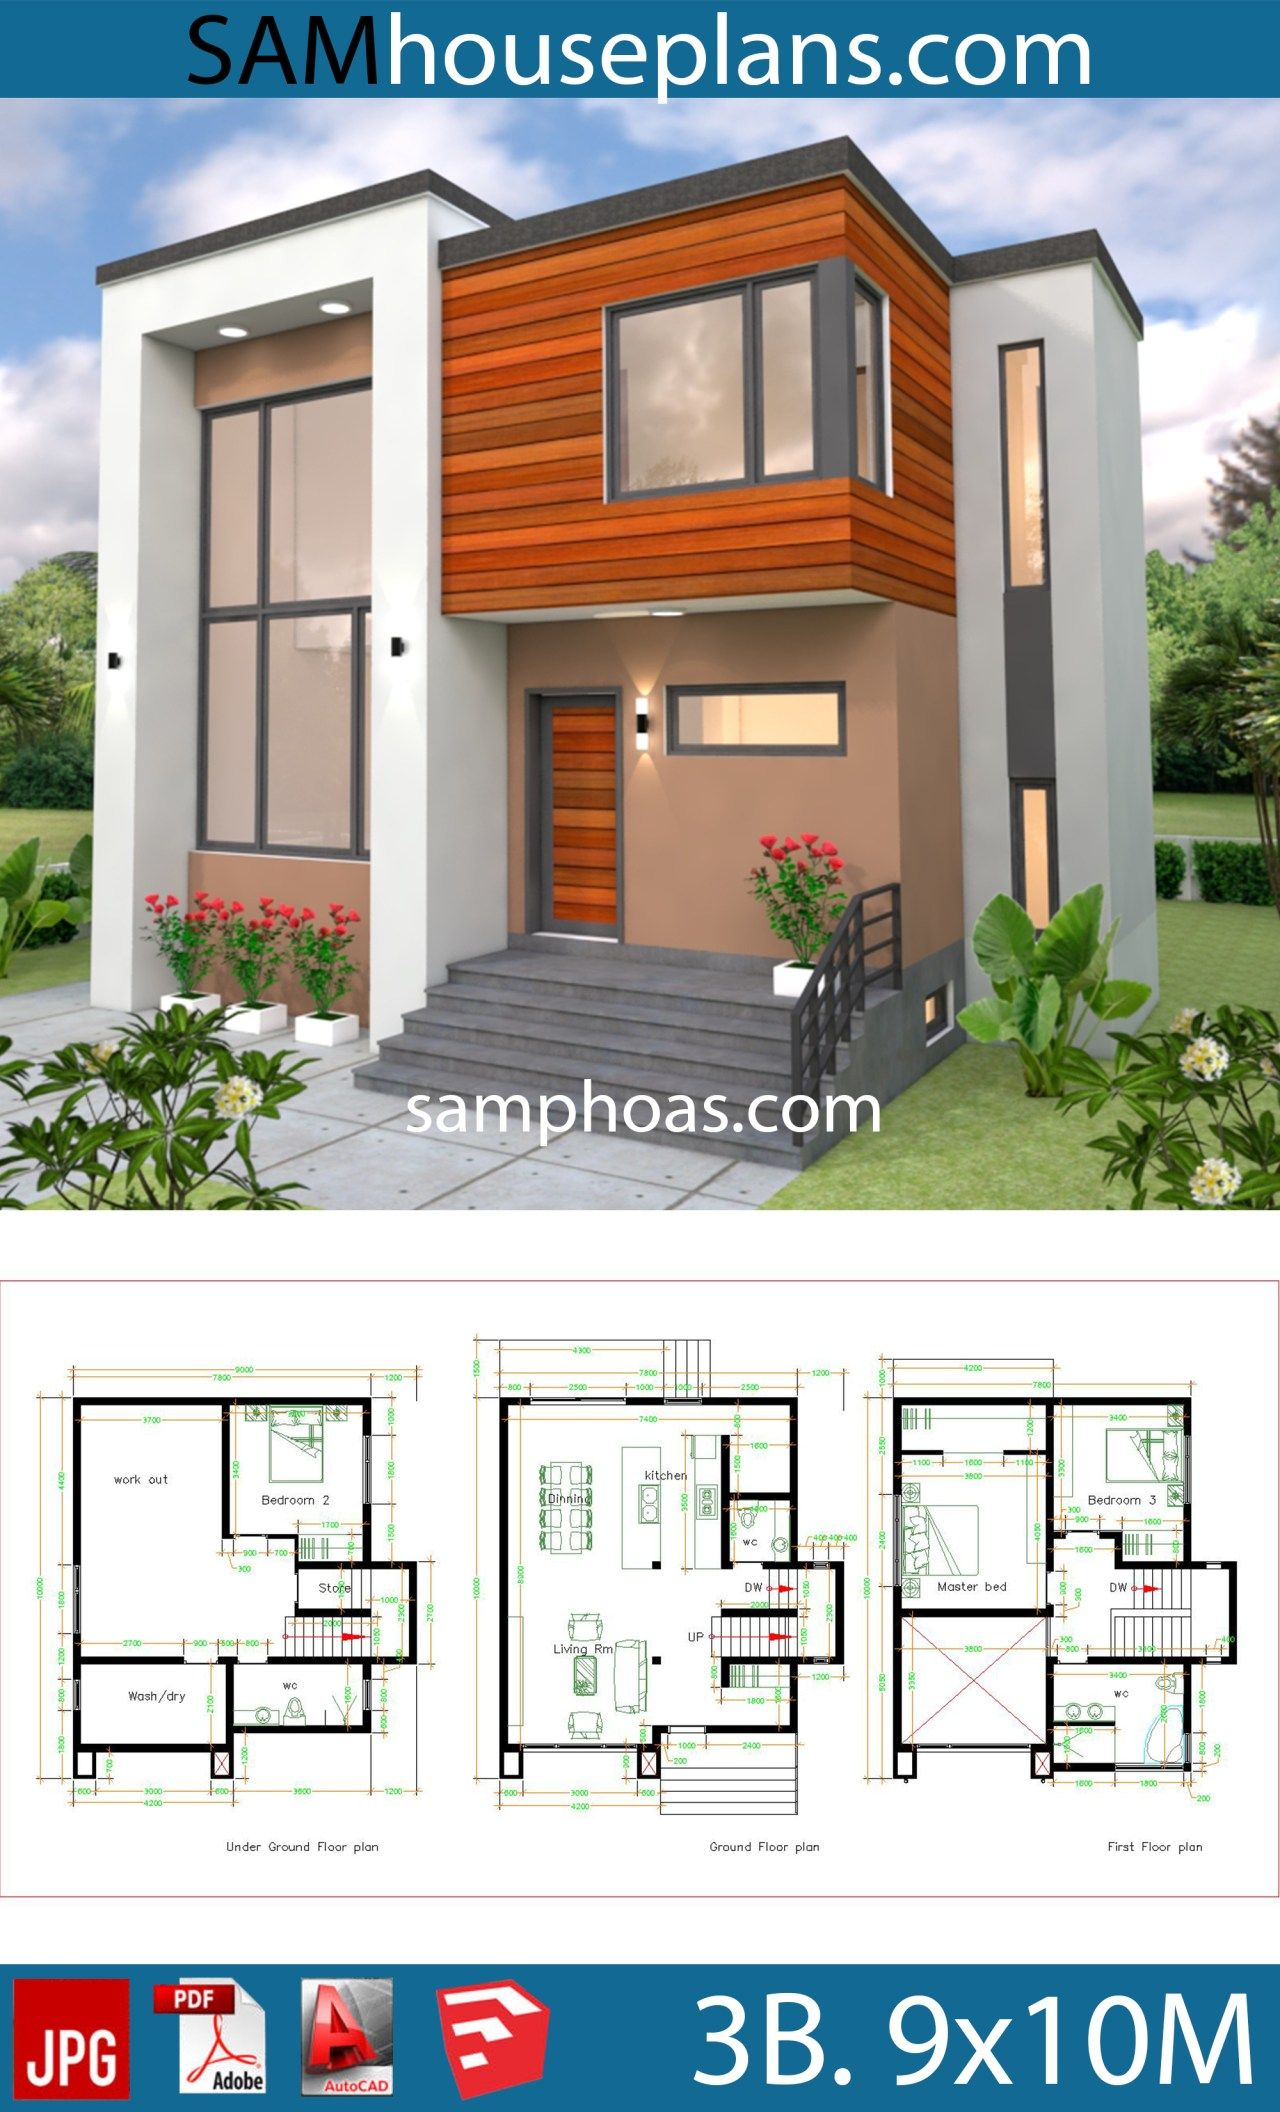 house plans 9x10 with 3 bedrooms - samphoas plan | small